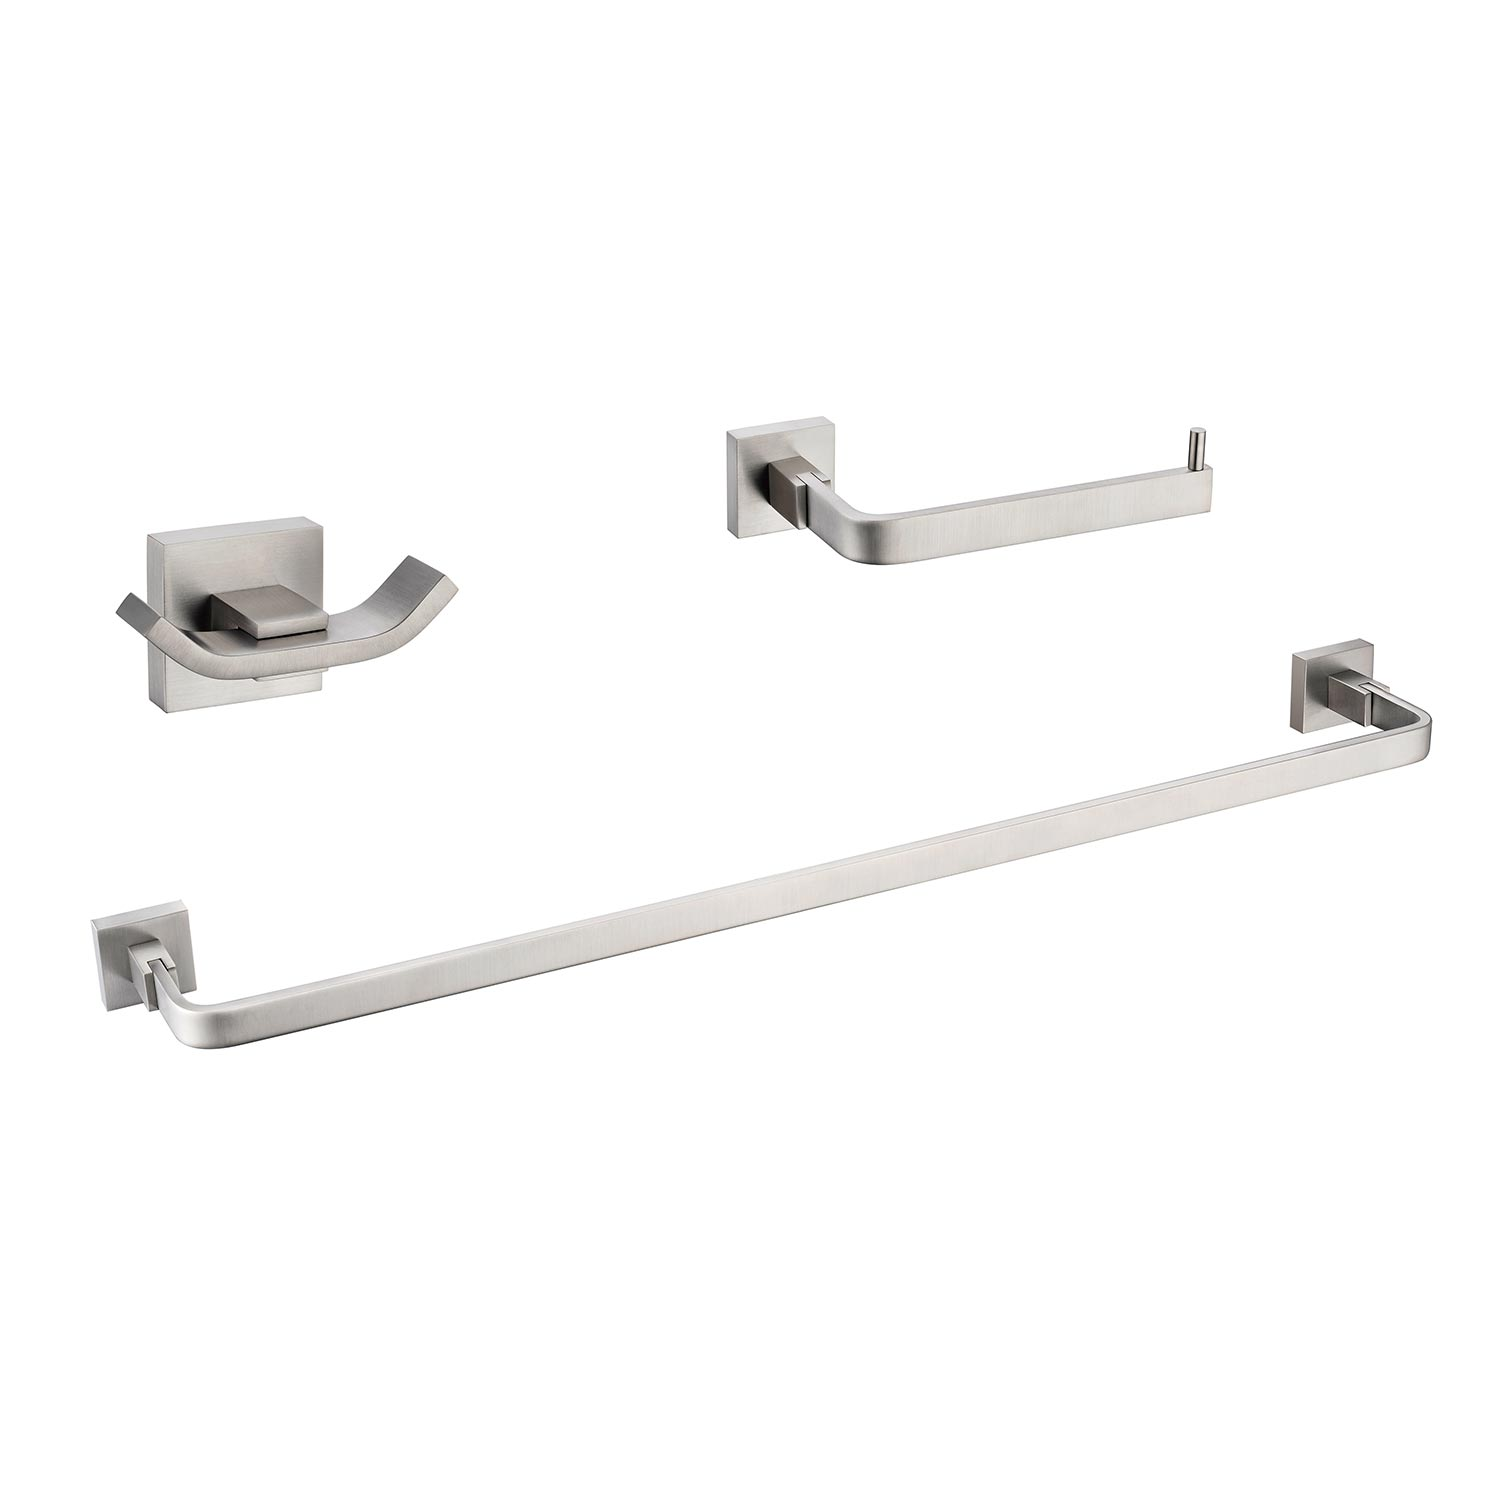 Brushed Nickel Bathroom Hardware Sets on bathroom hardware product, bathroom rug and tank set, bathroom hand towel holder, bathroom hardware sets black, bathroom rugs and toilet tank covers, bathroom toilet seat cover sets, bathroom decor sets,